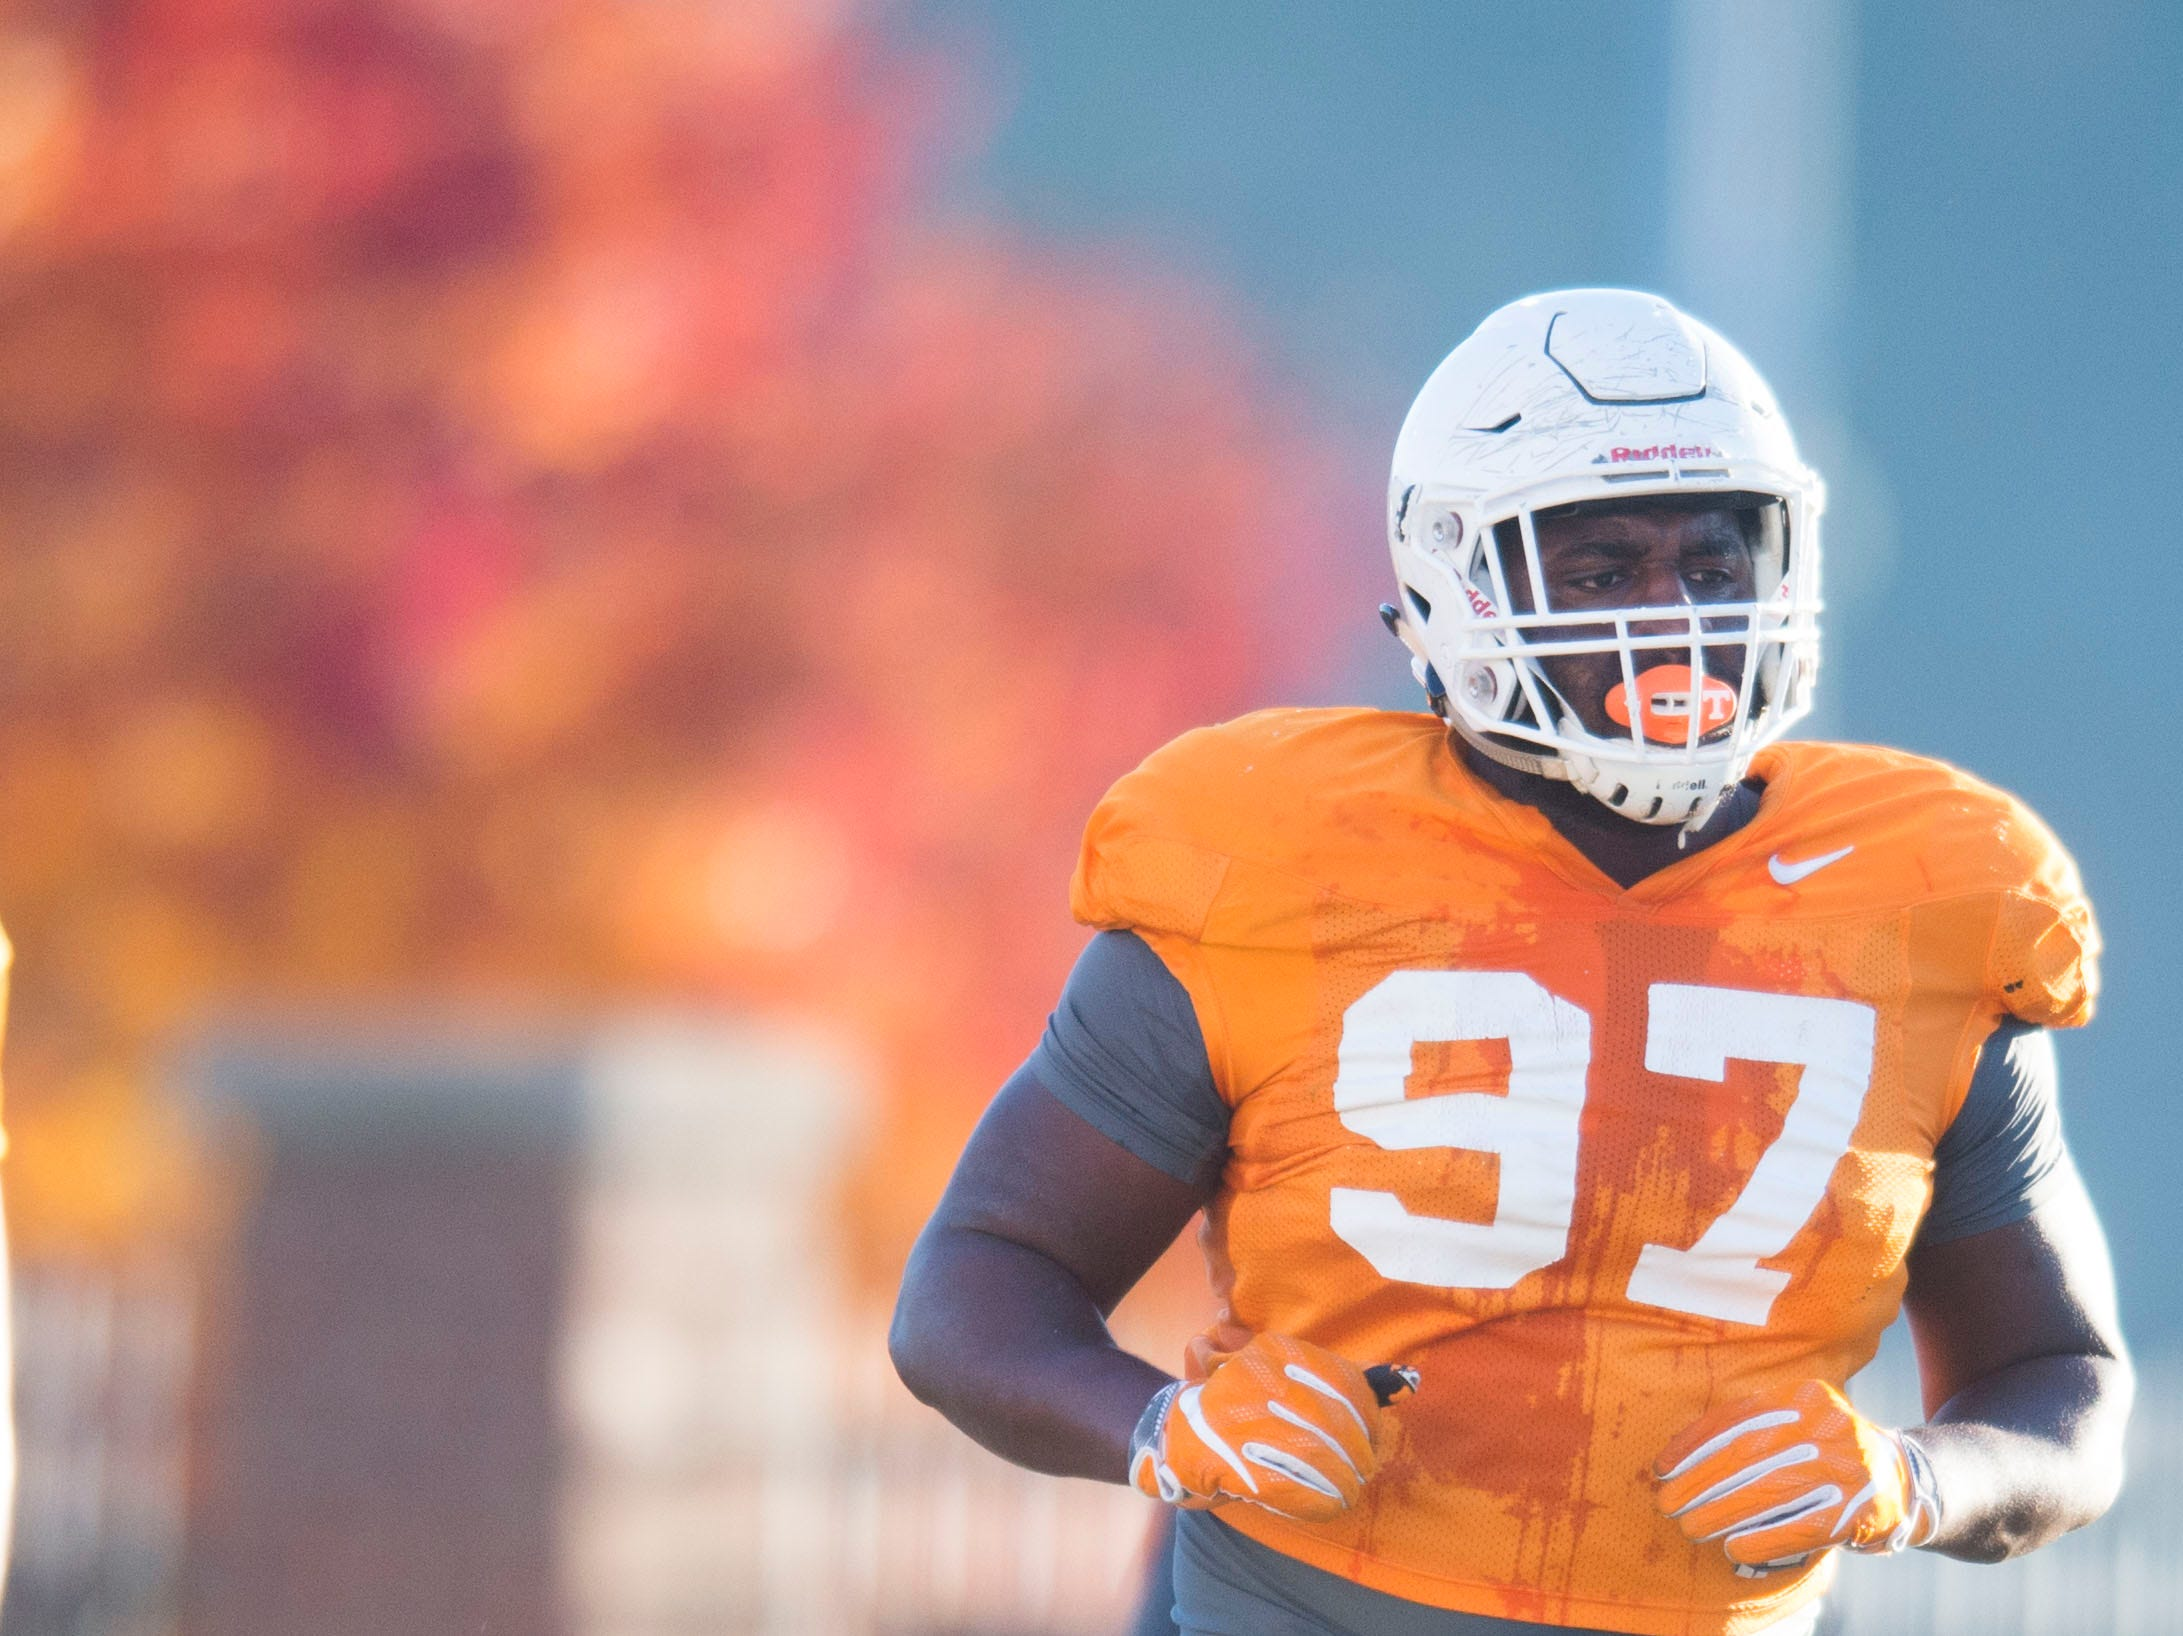 Tennessee defensive lineman Paul Bain (97) runs on the field during Vols football practice Wednesday, Nov. 21, 2018.